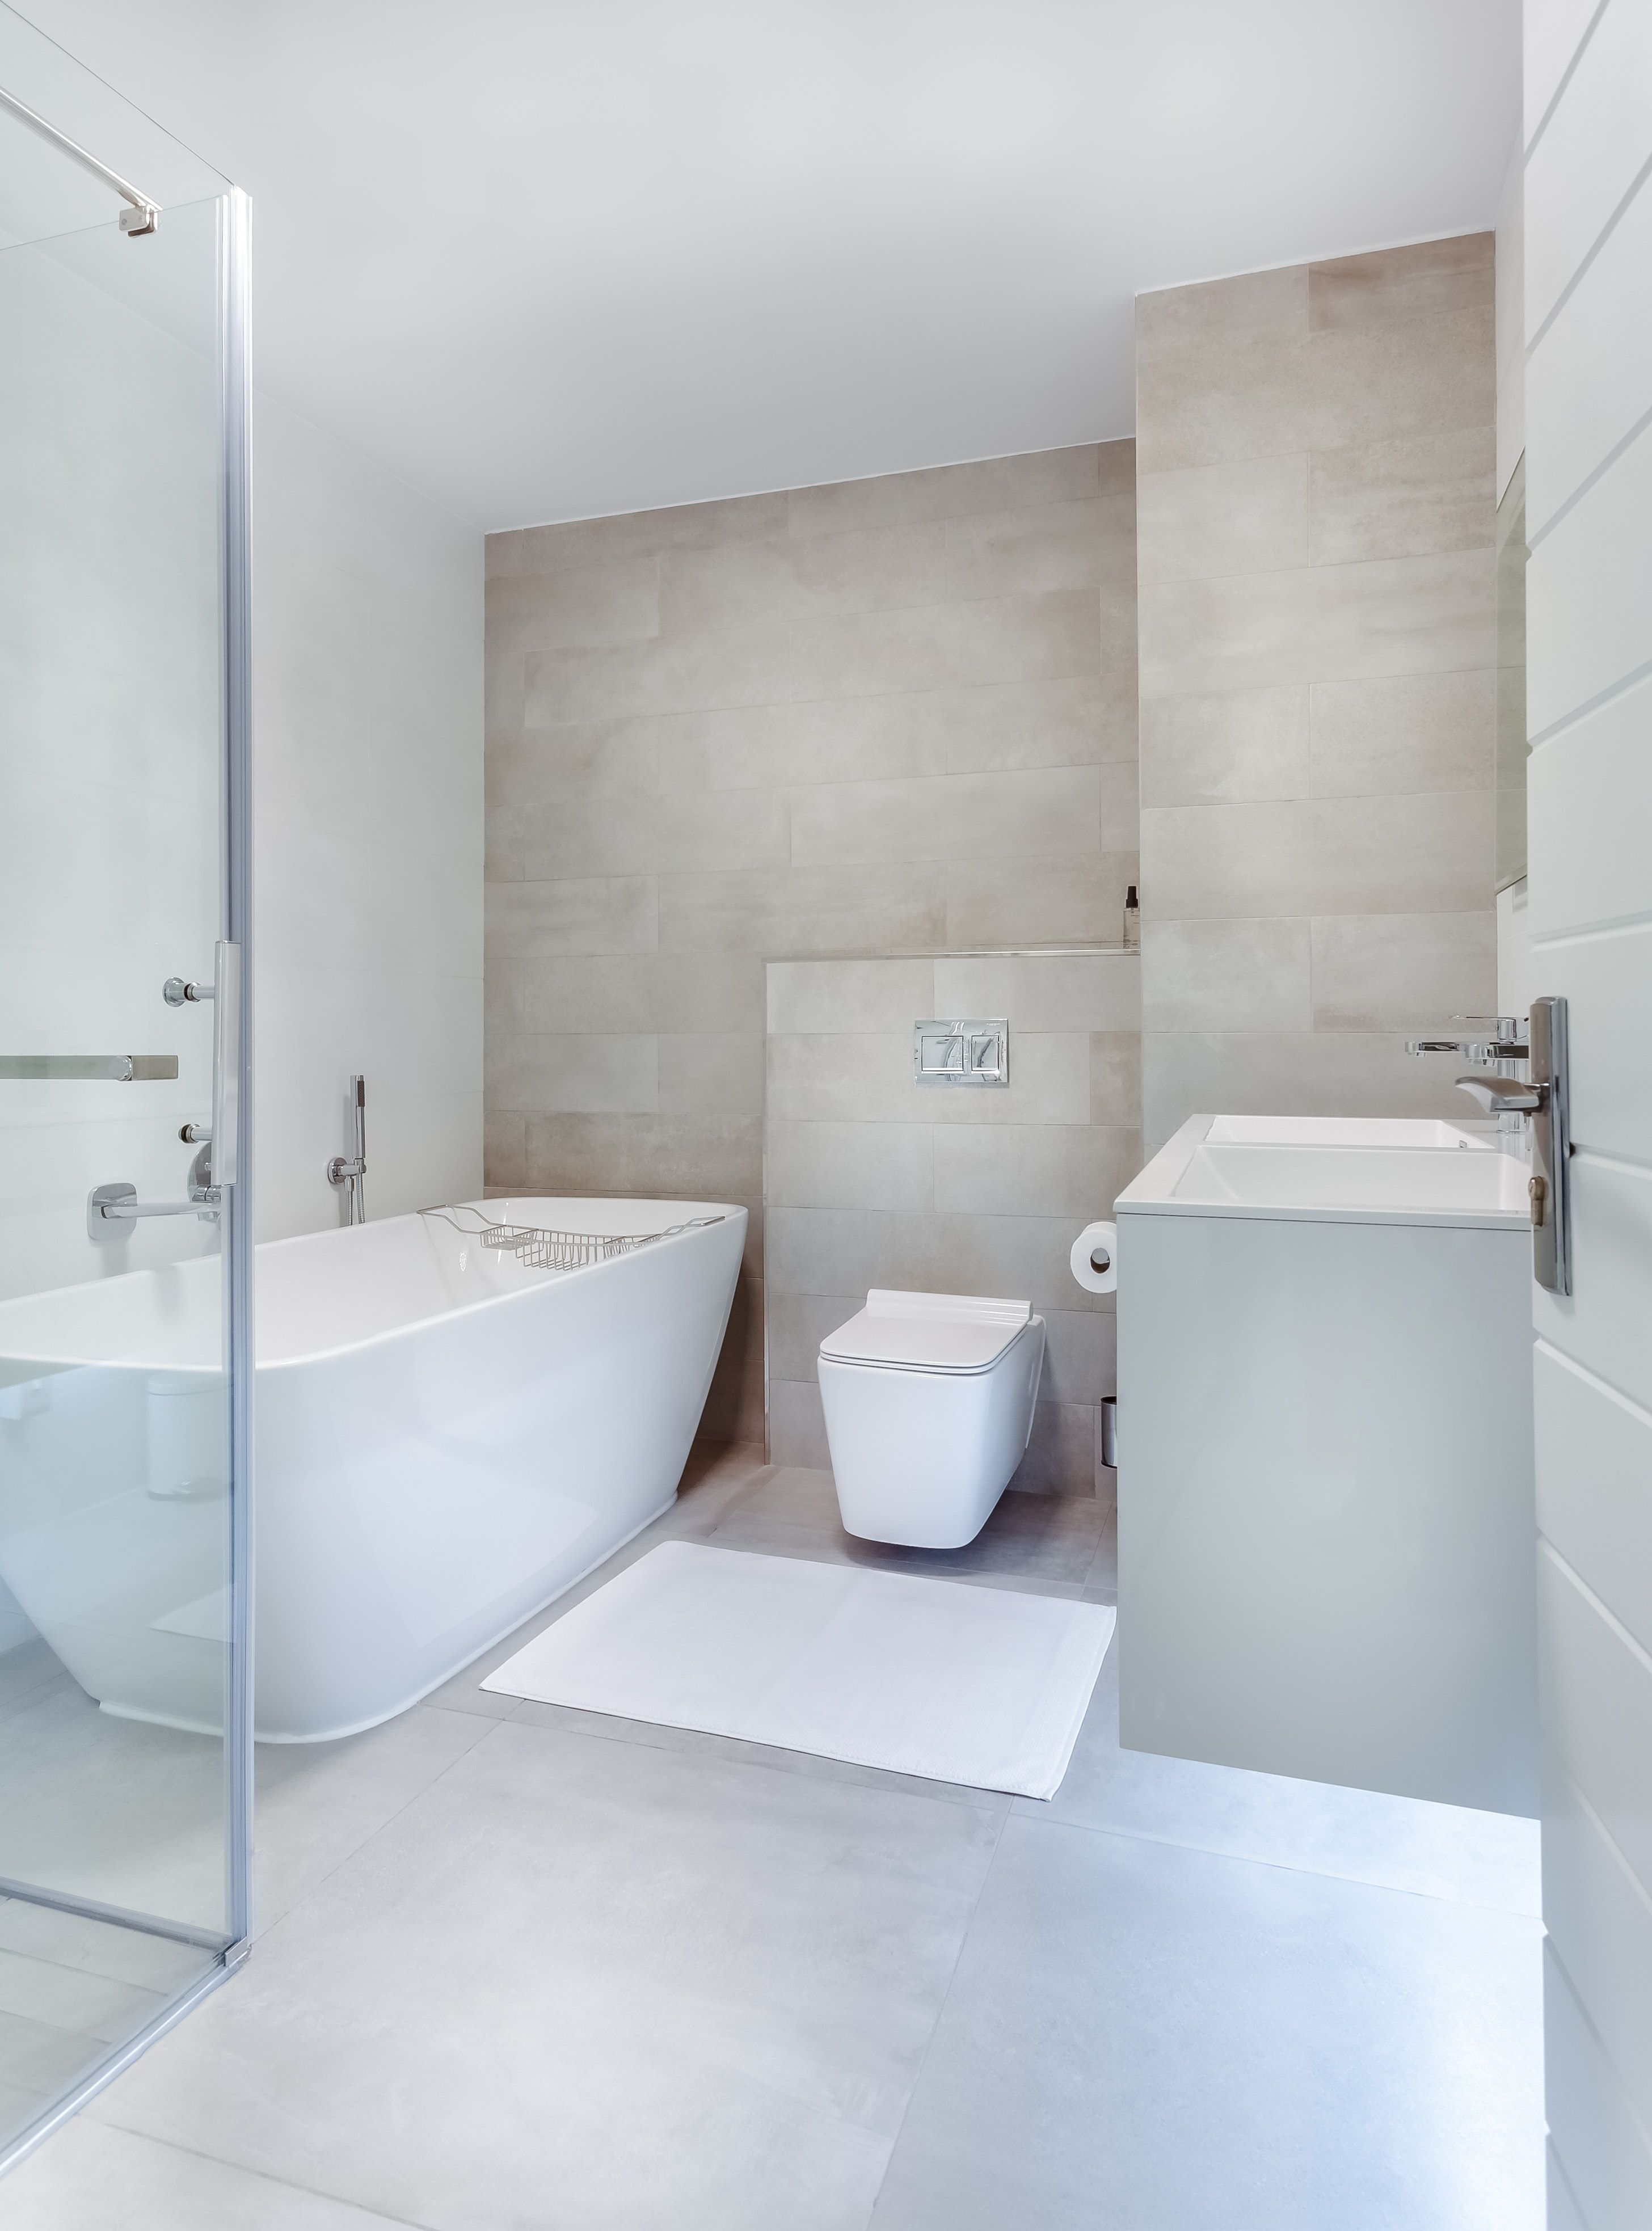 Bathroom Remodeling On A Budget With A Touch Of Class Kukun Minimalist Bathroom Bathroom Design Bathrooms Remodel